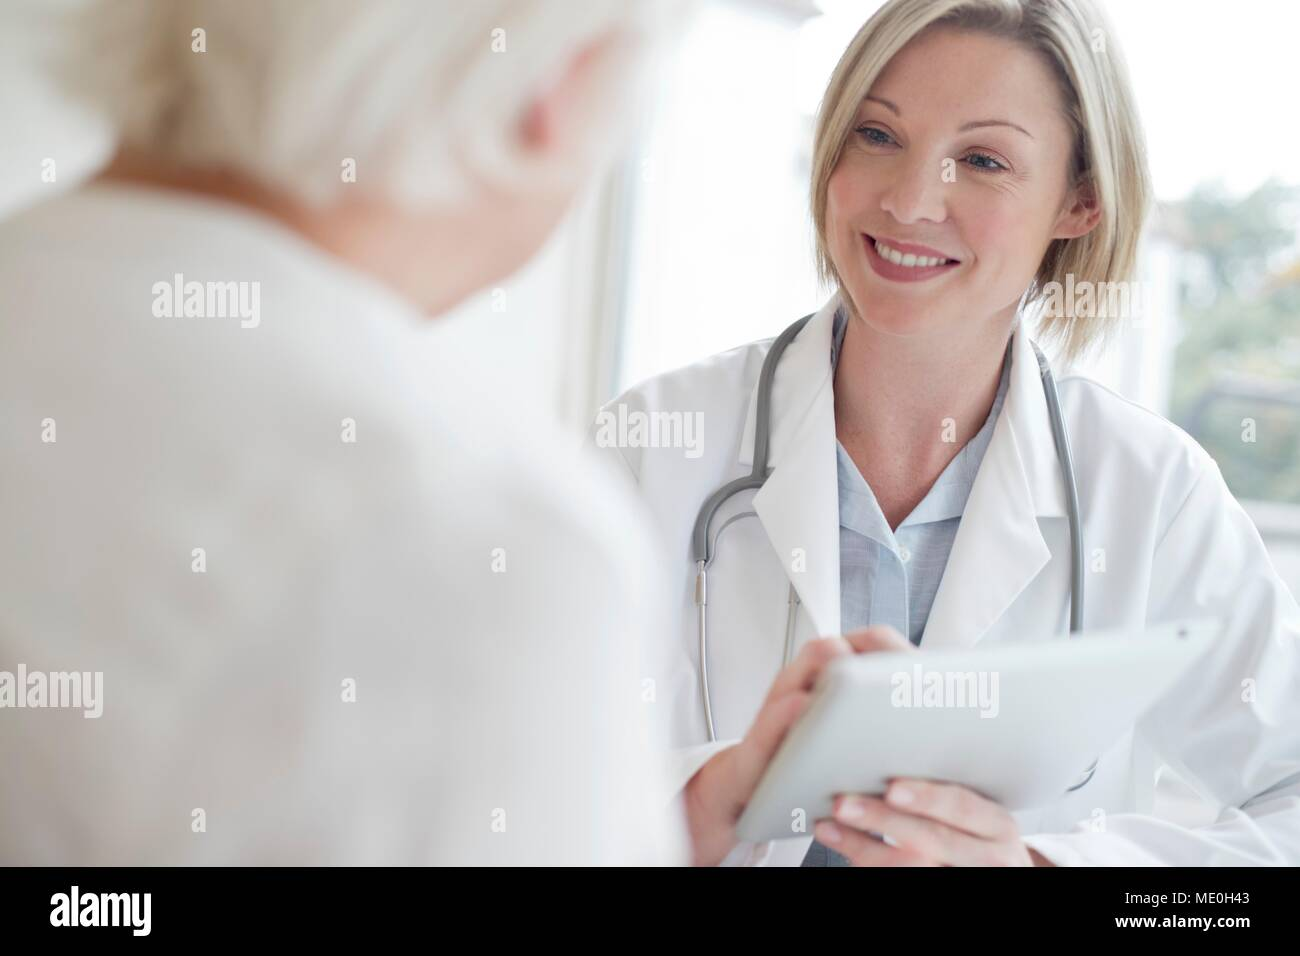 Ärztin mit digitalen Tablet mit Patienten. Stockfoto